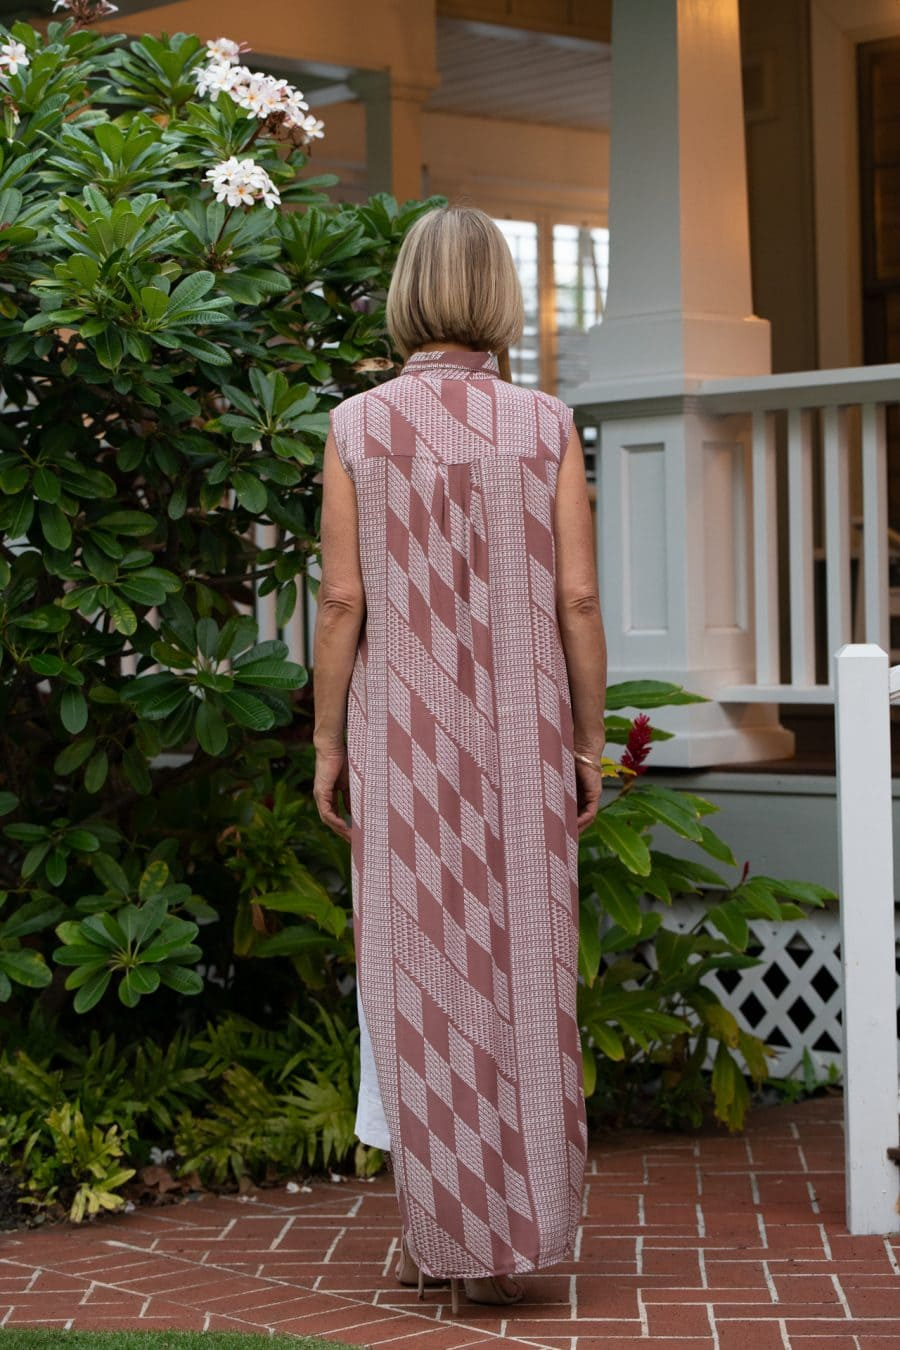 Model wearing Hualalai Top in Fired Brick White Kamehahema Pattern - Back View